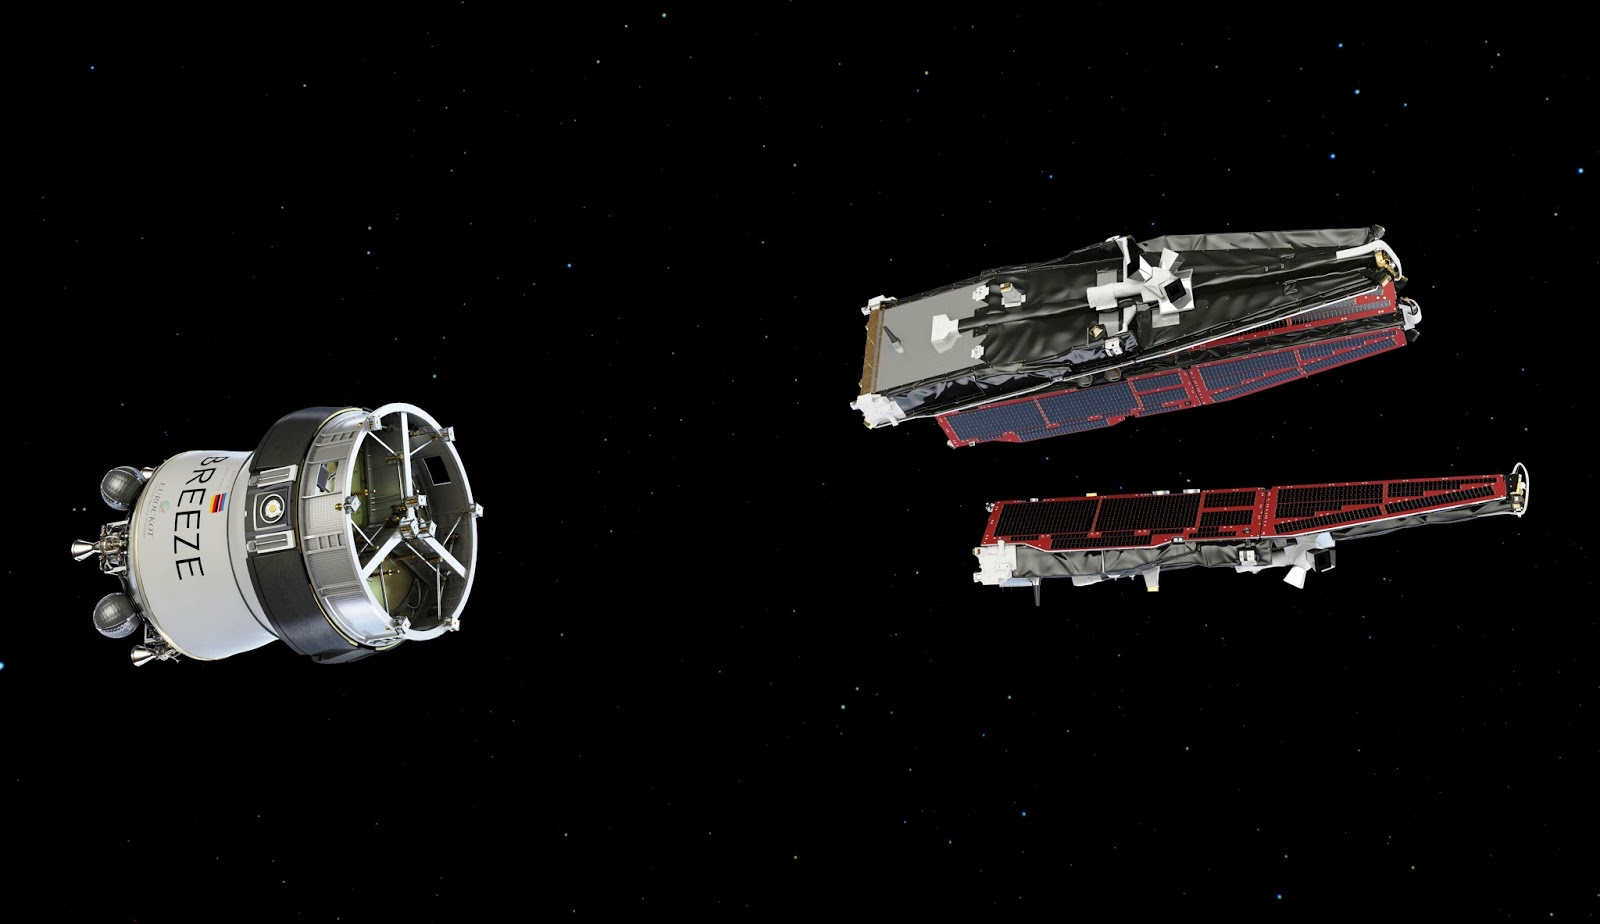 Astronomy And Space News Astro Watch Swarm Satellites